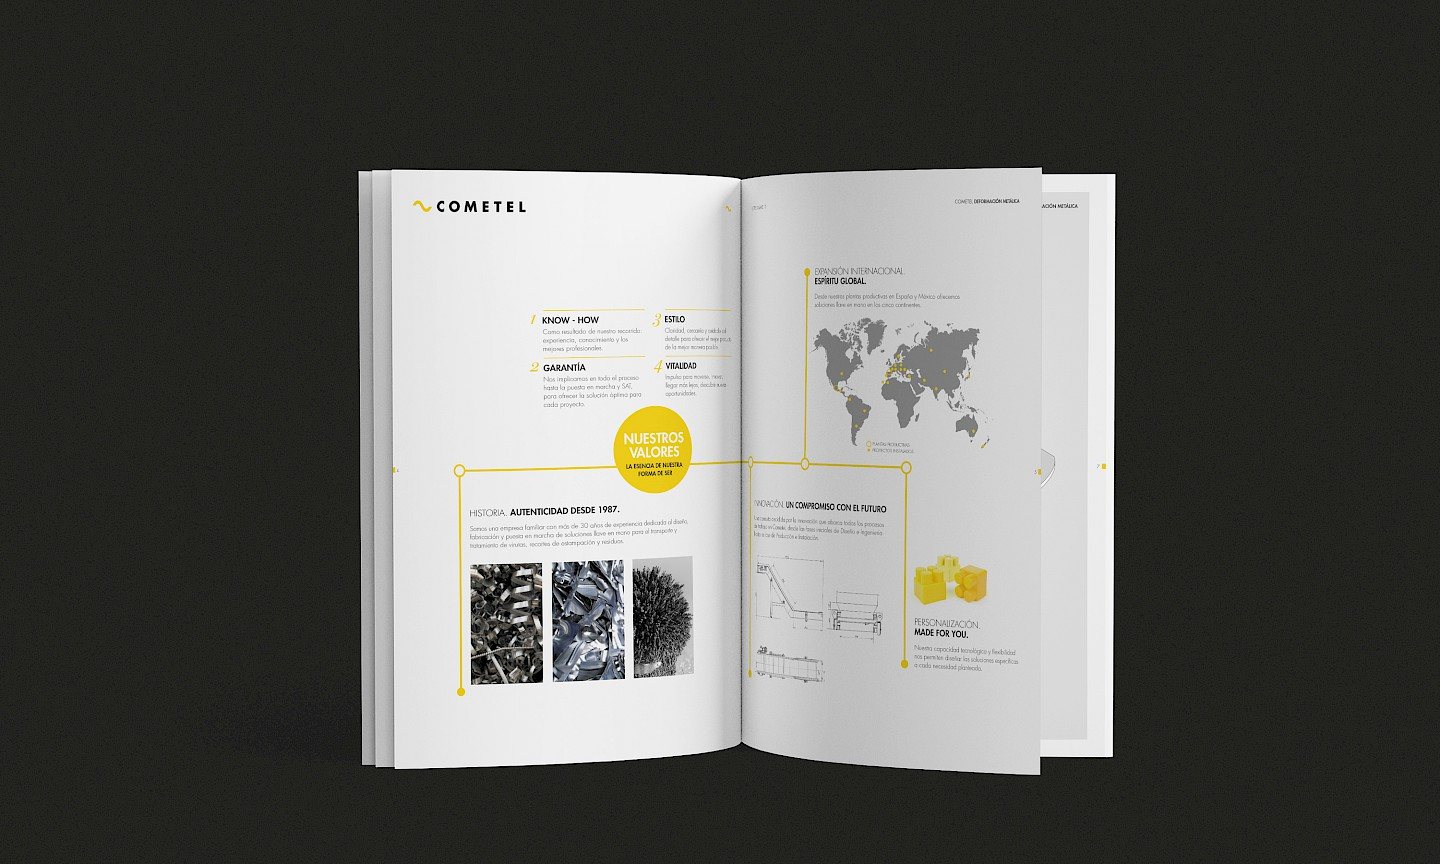 cometel technology catalogo branding move 03 design